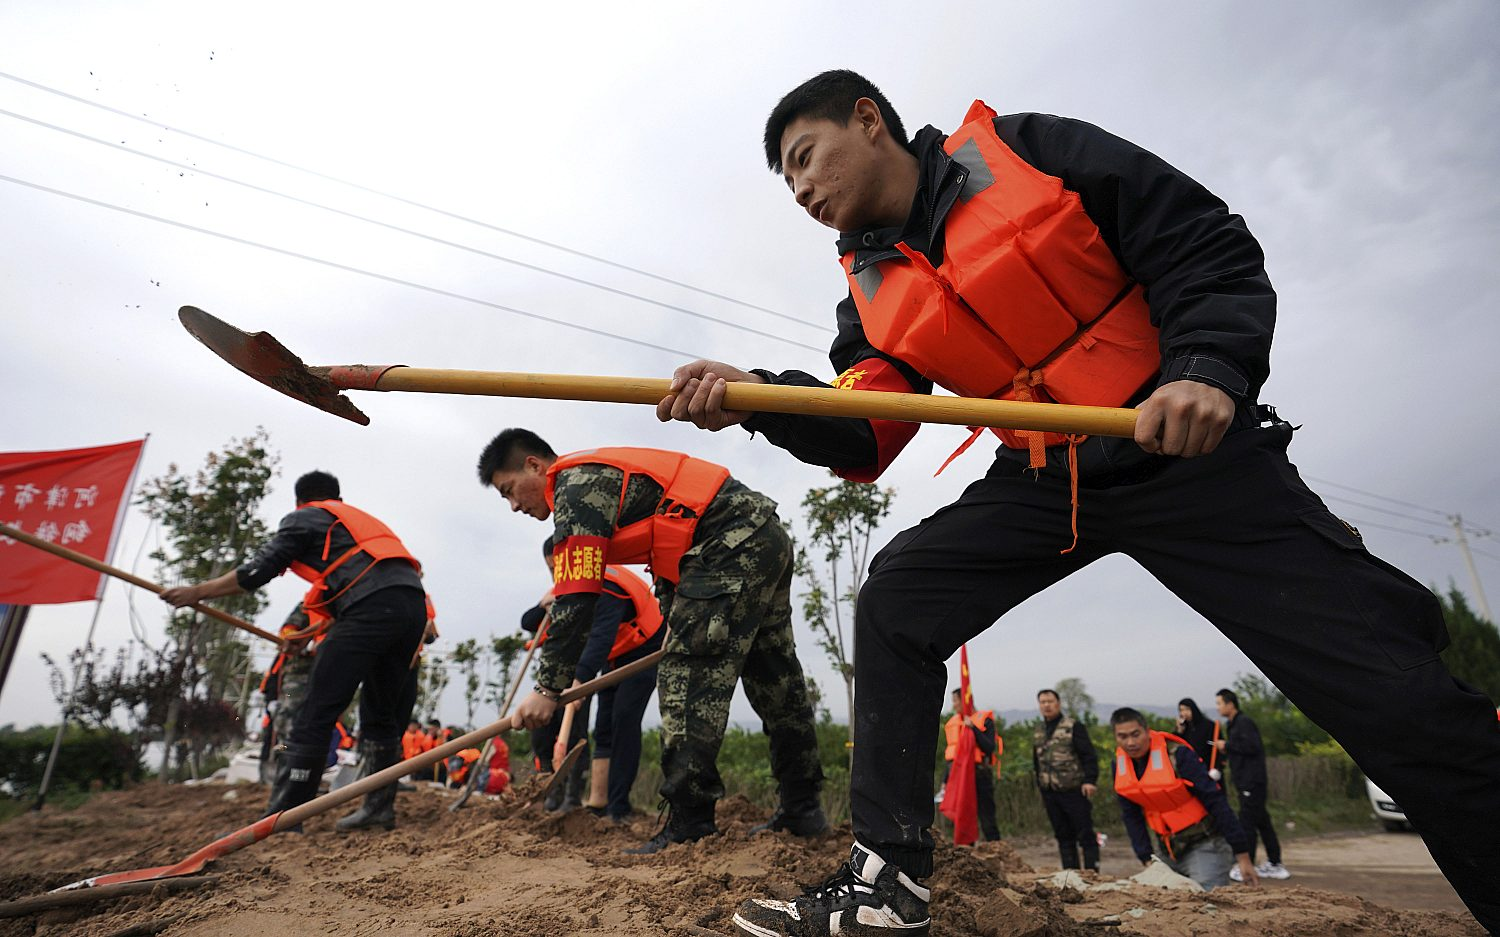 Floods claim lives in China